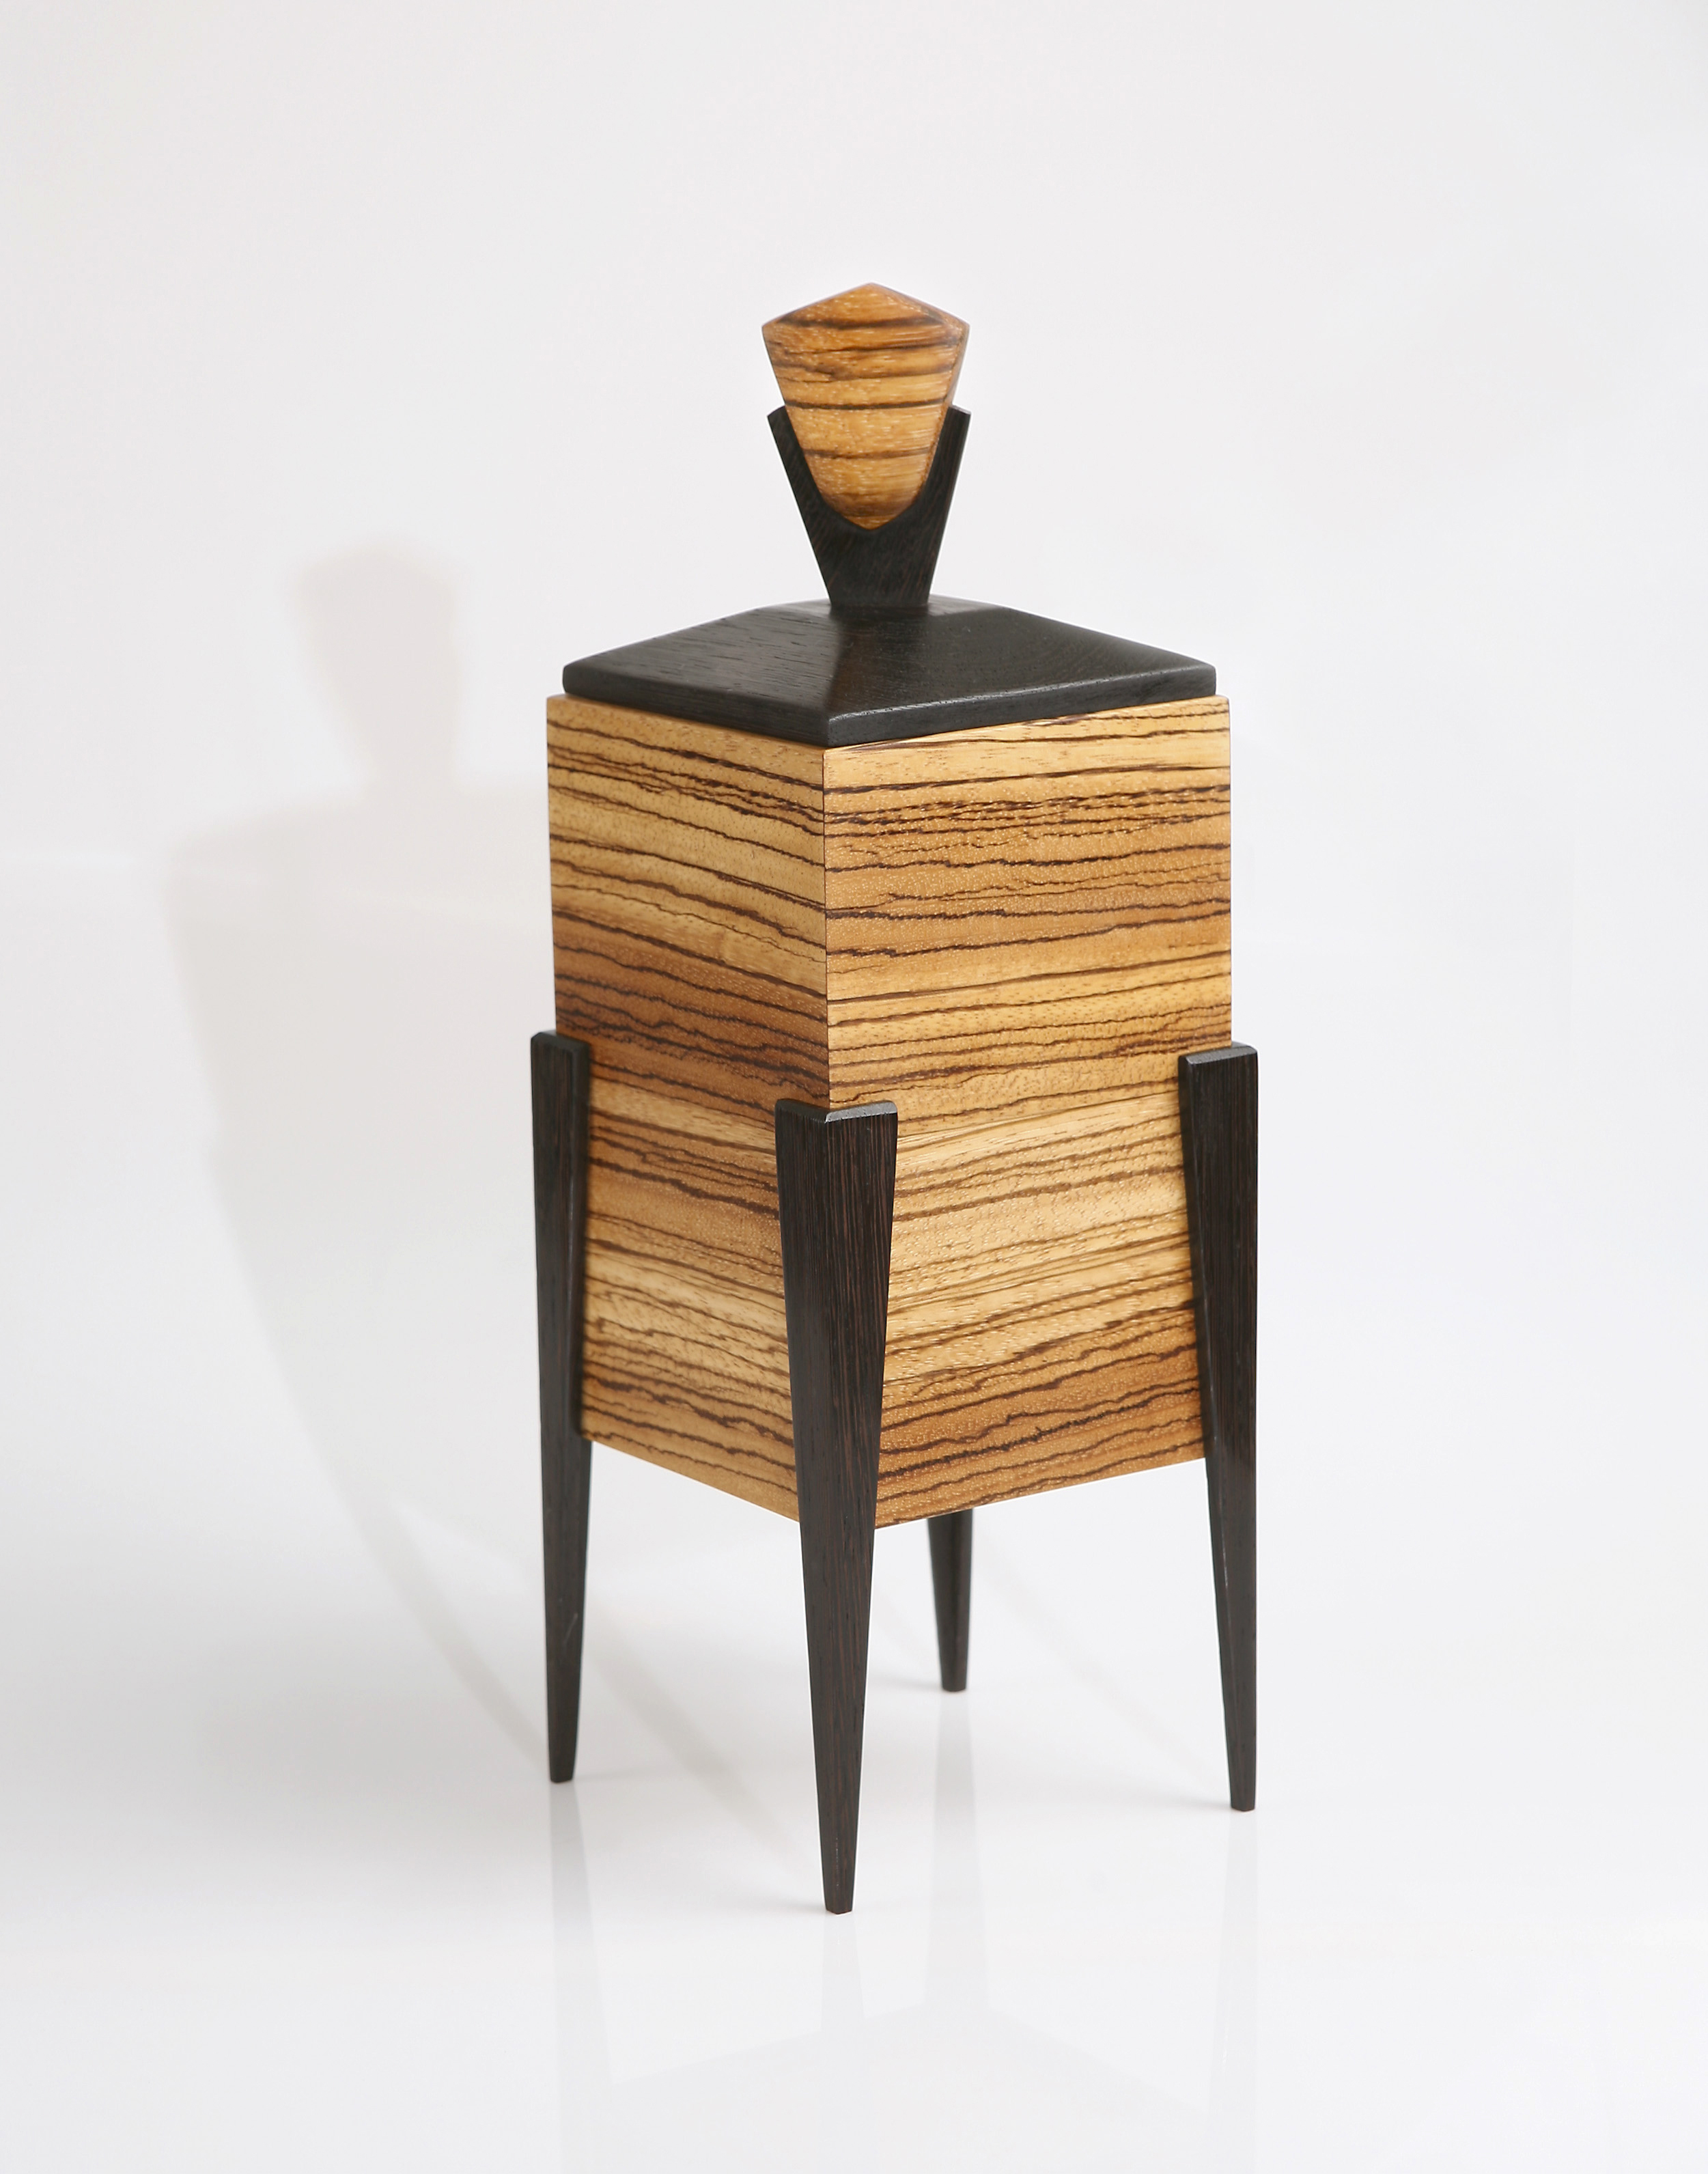 Zebrawood jewelry box